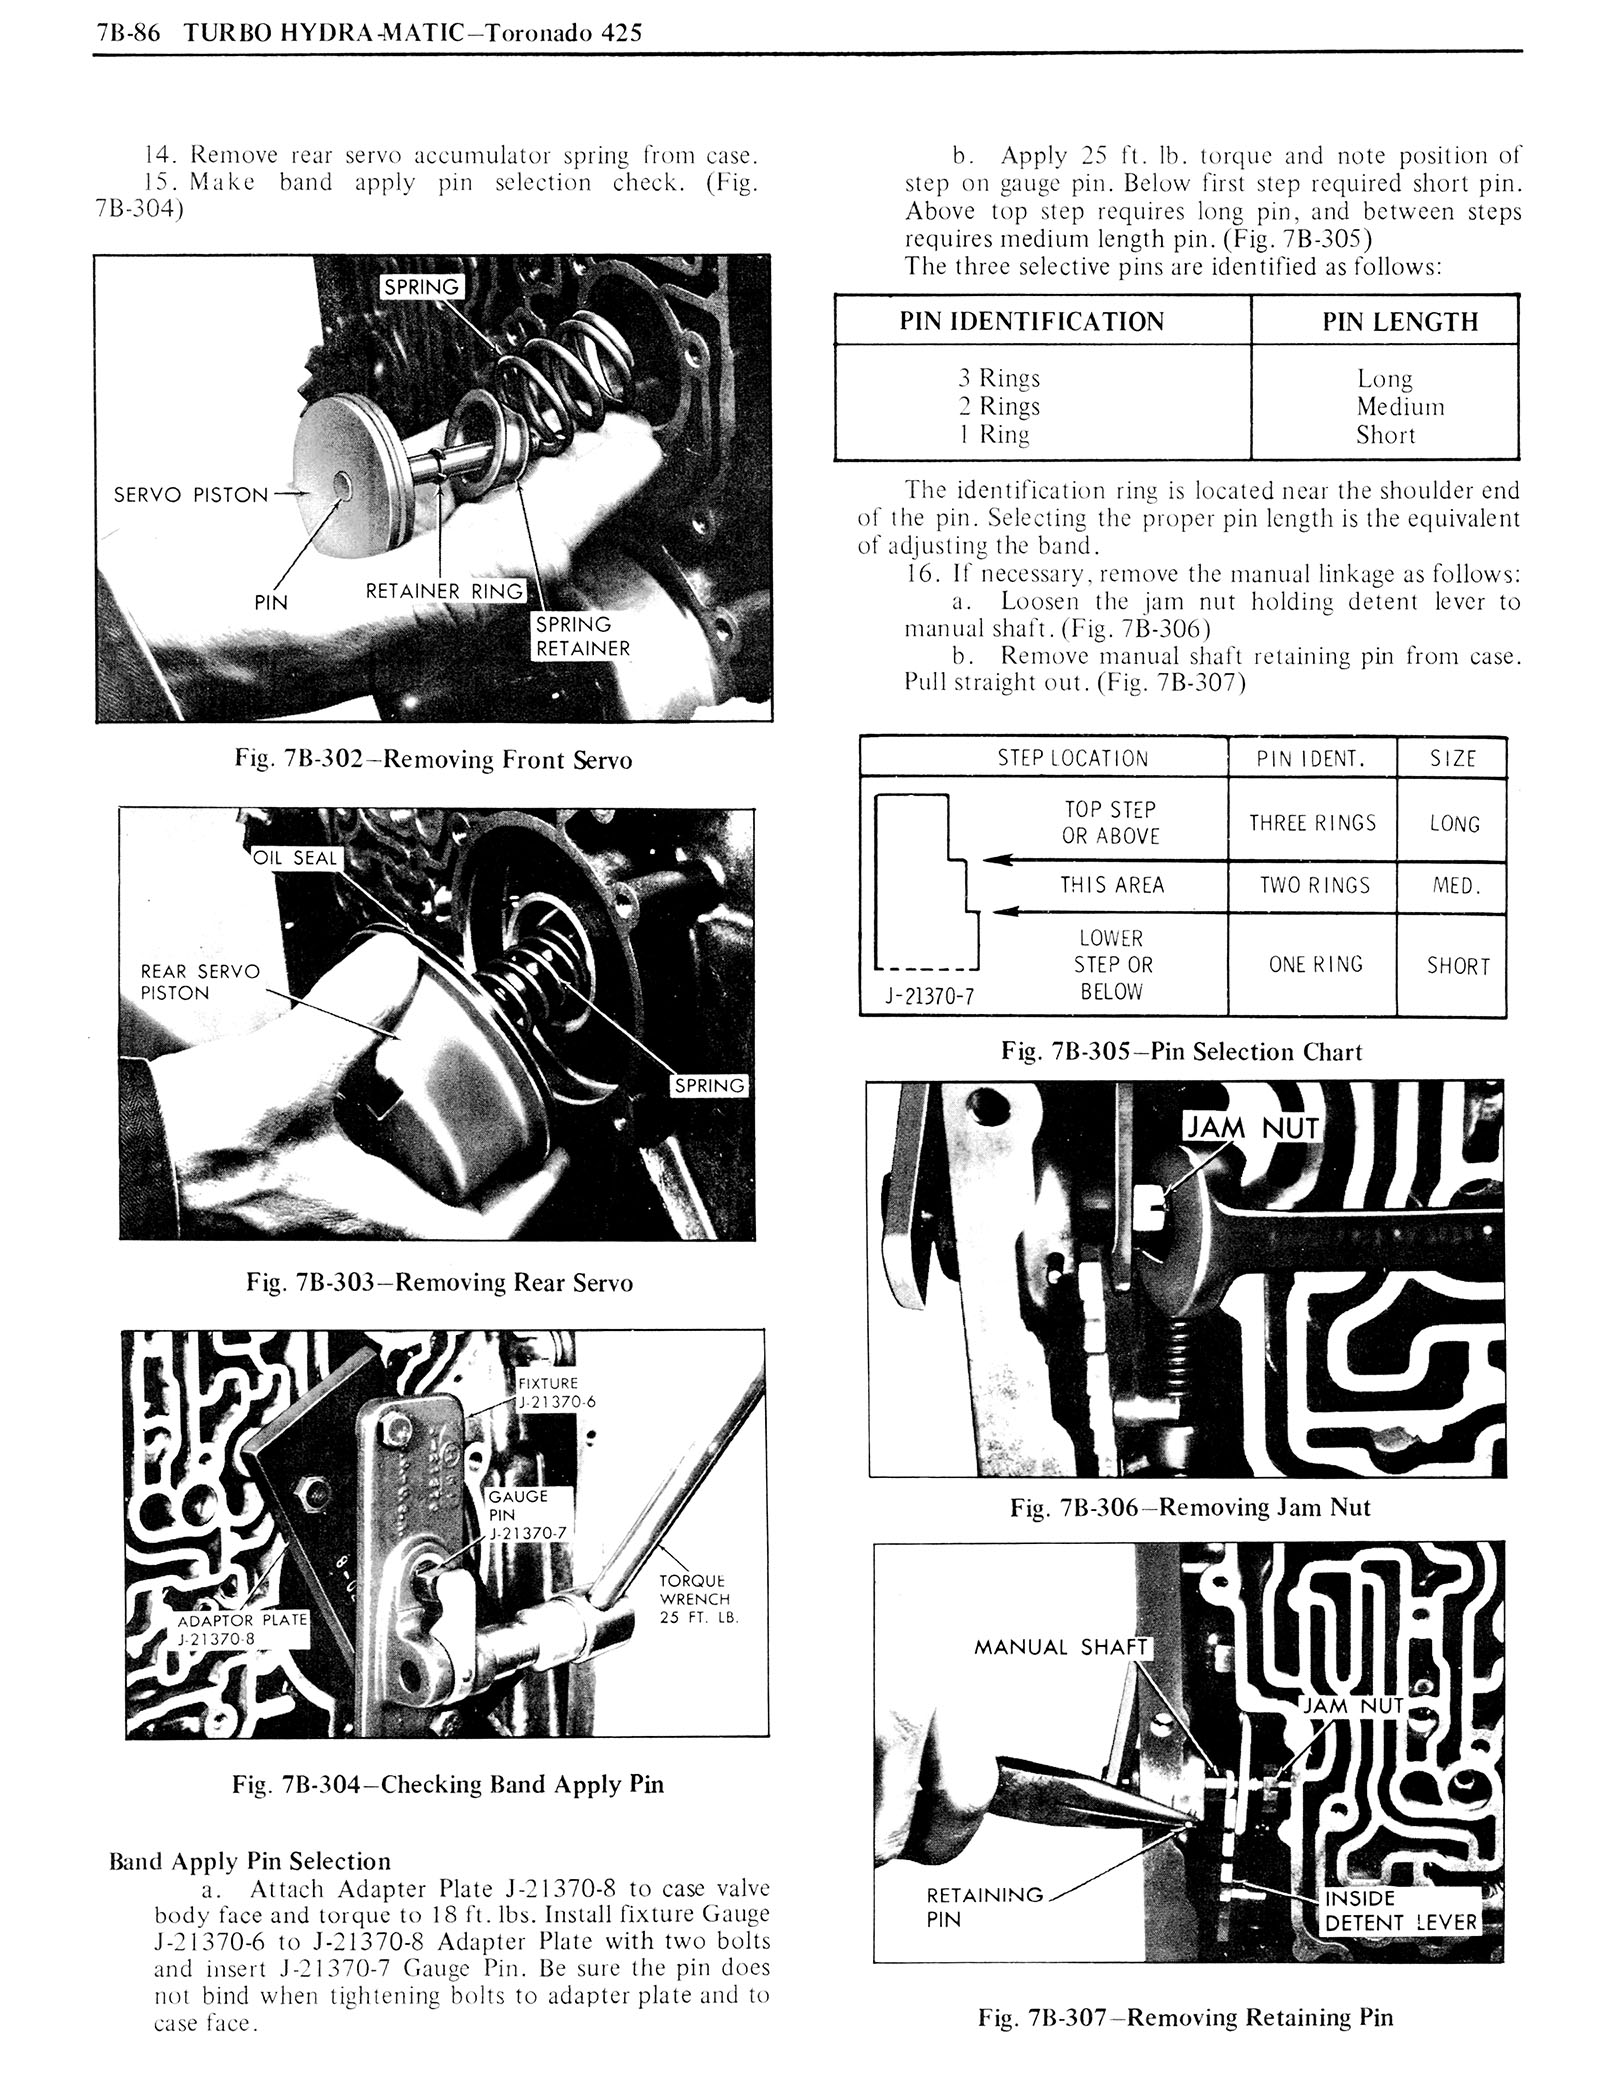 1976 Oldsmobile Service Manual page 818 of 1390